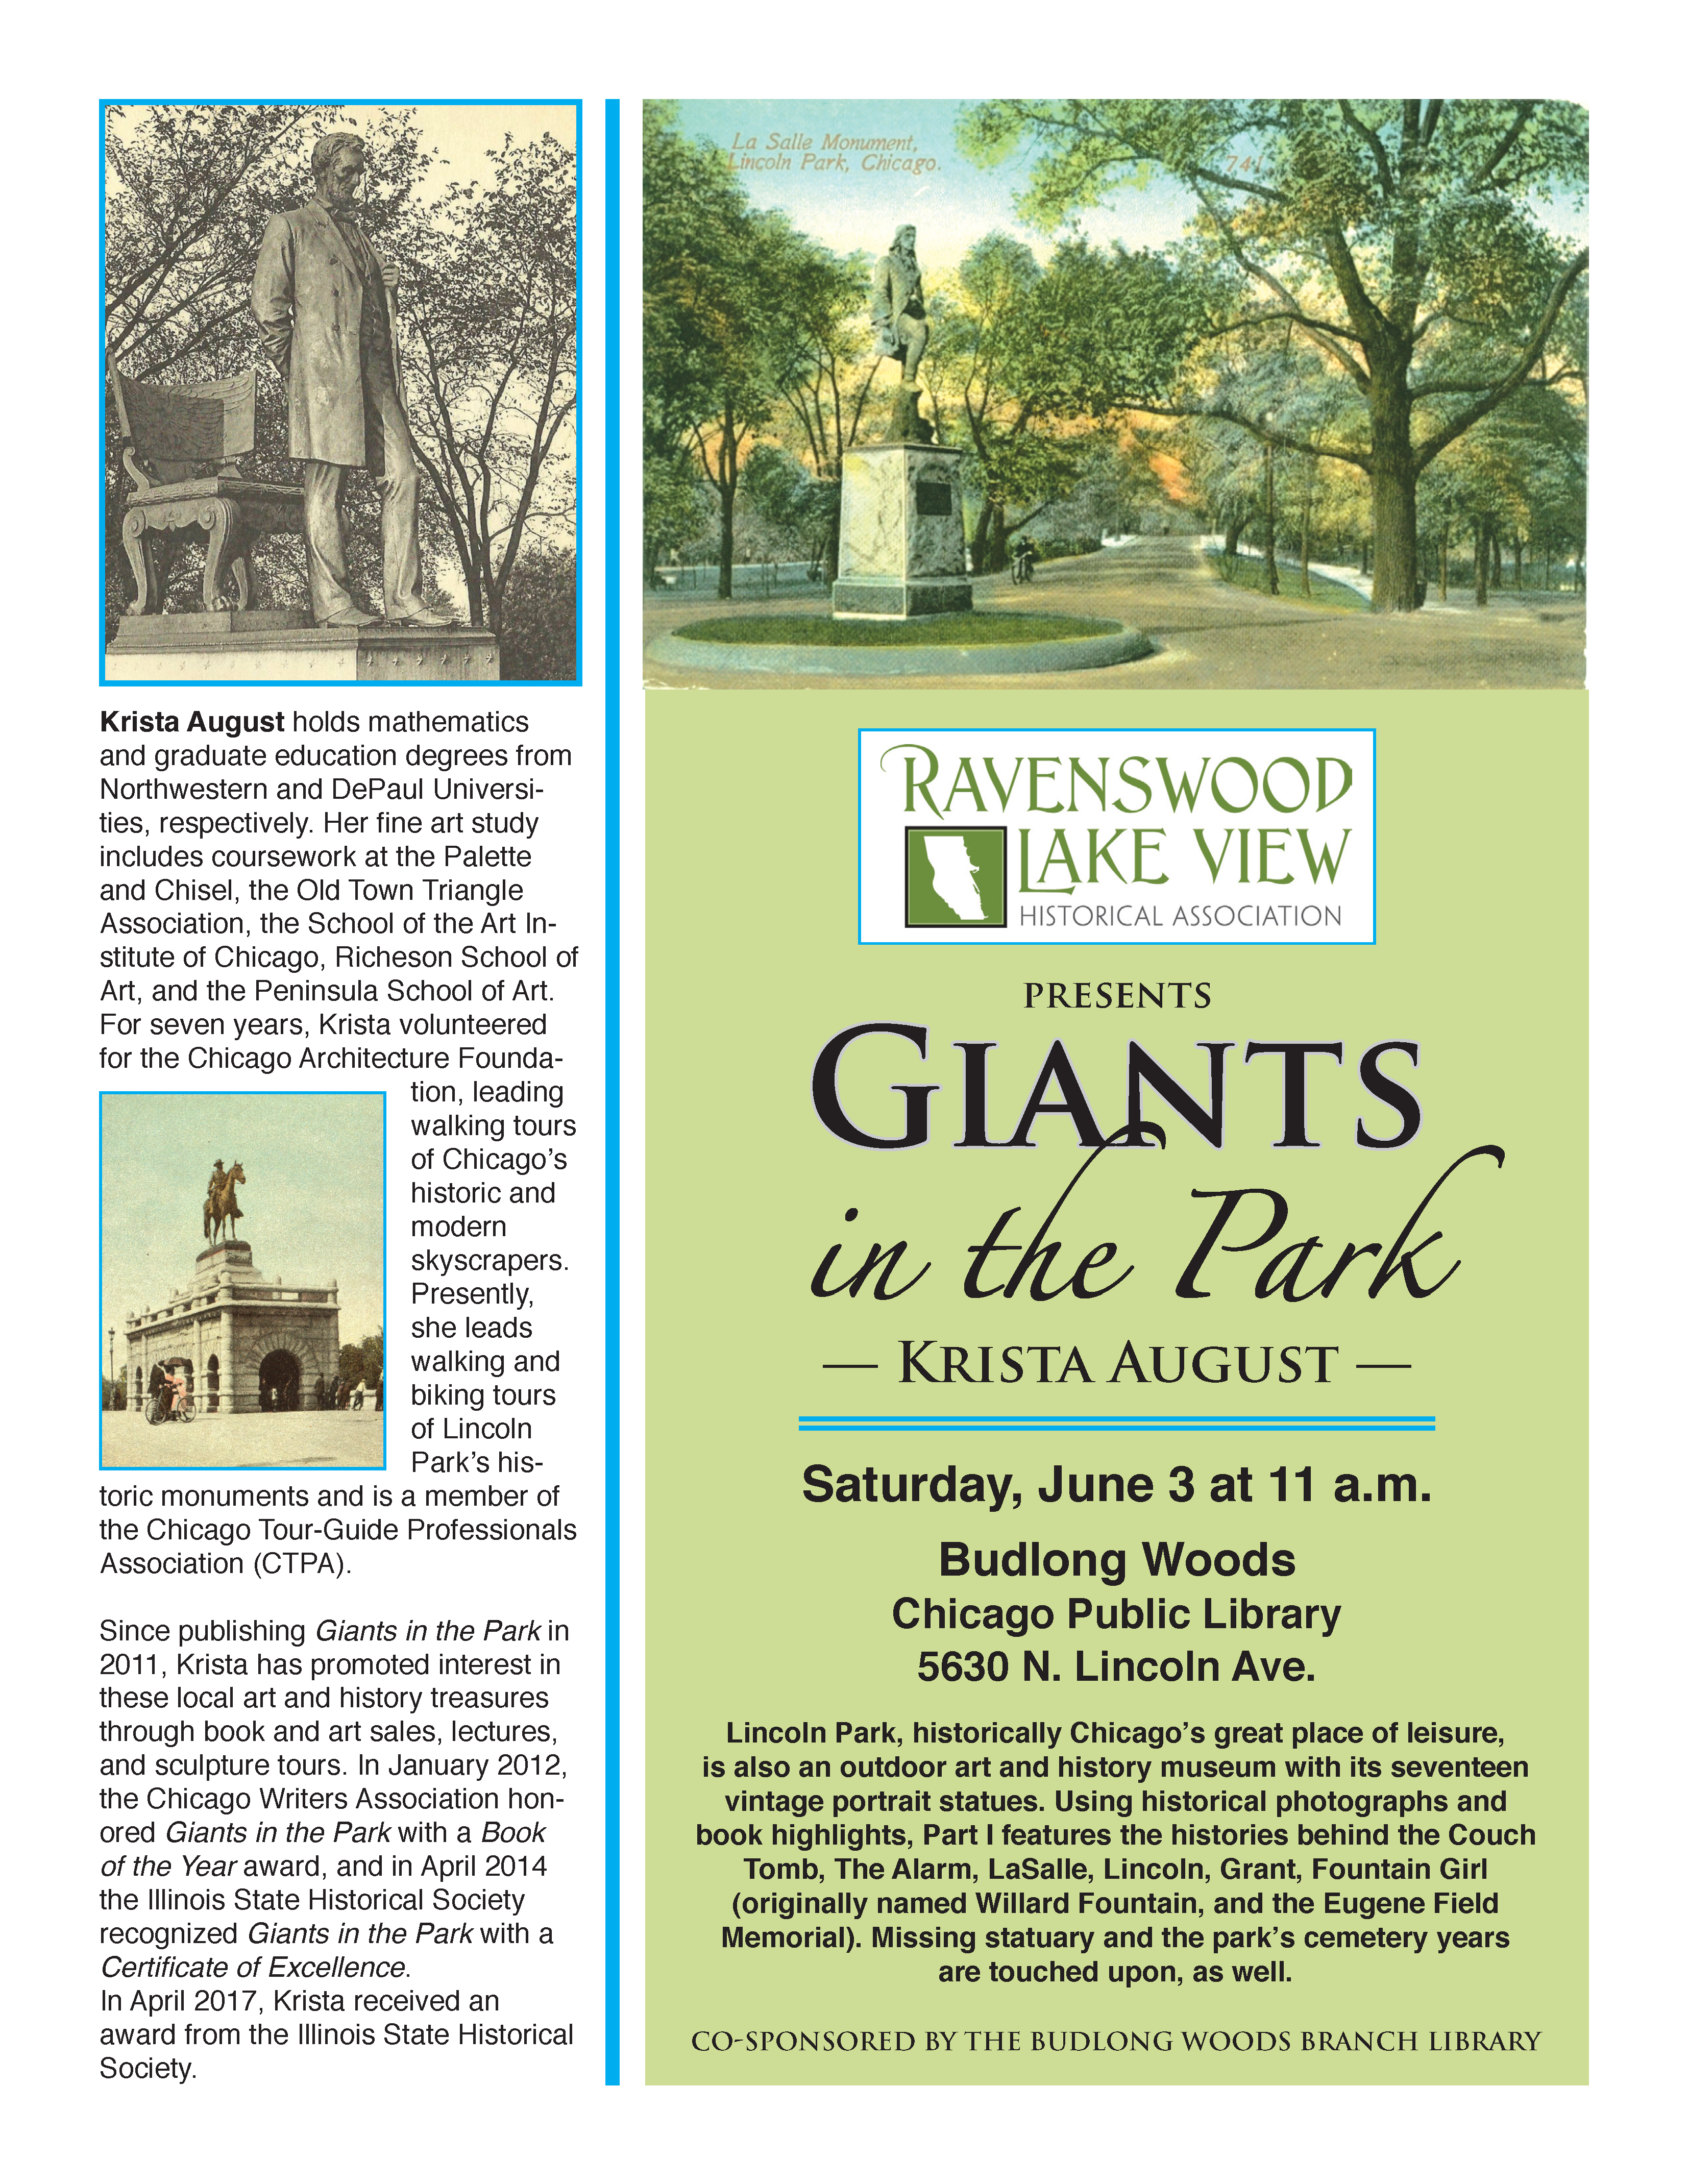 Giants in the Park - June 3 11 am - 5630 N. Lincoln Ave.